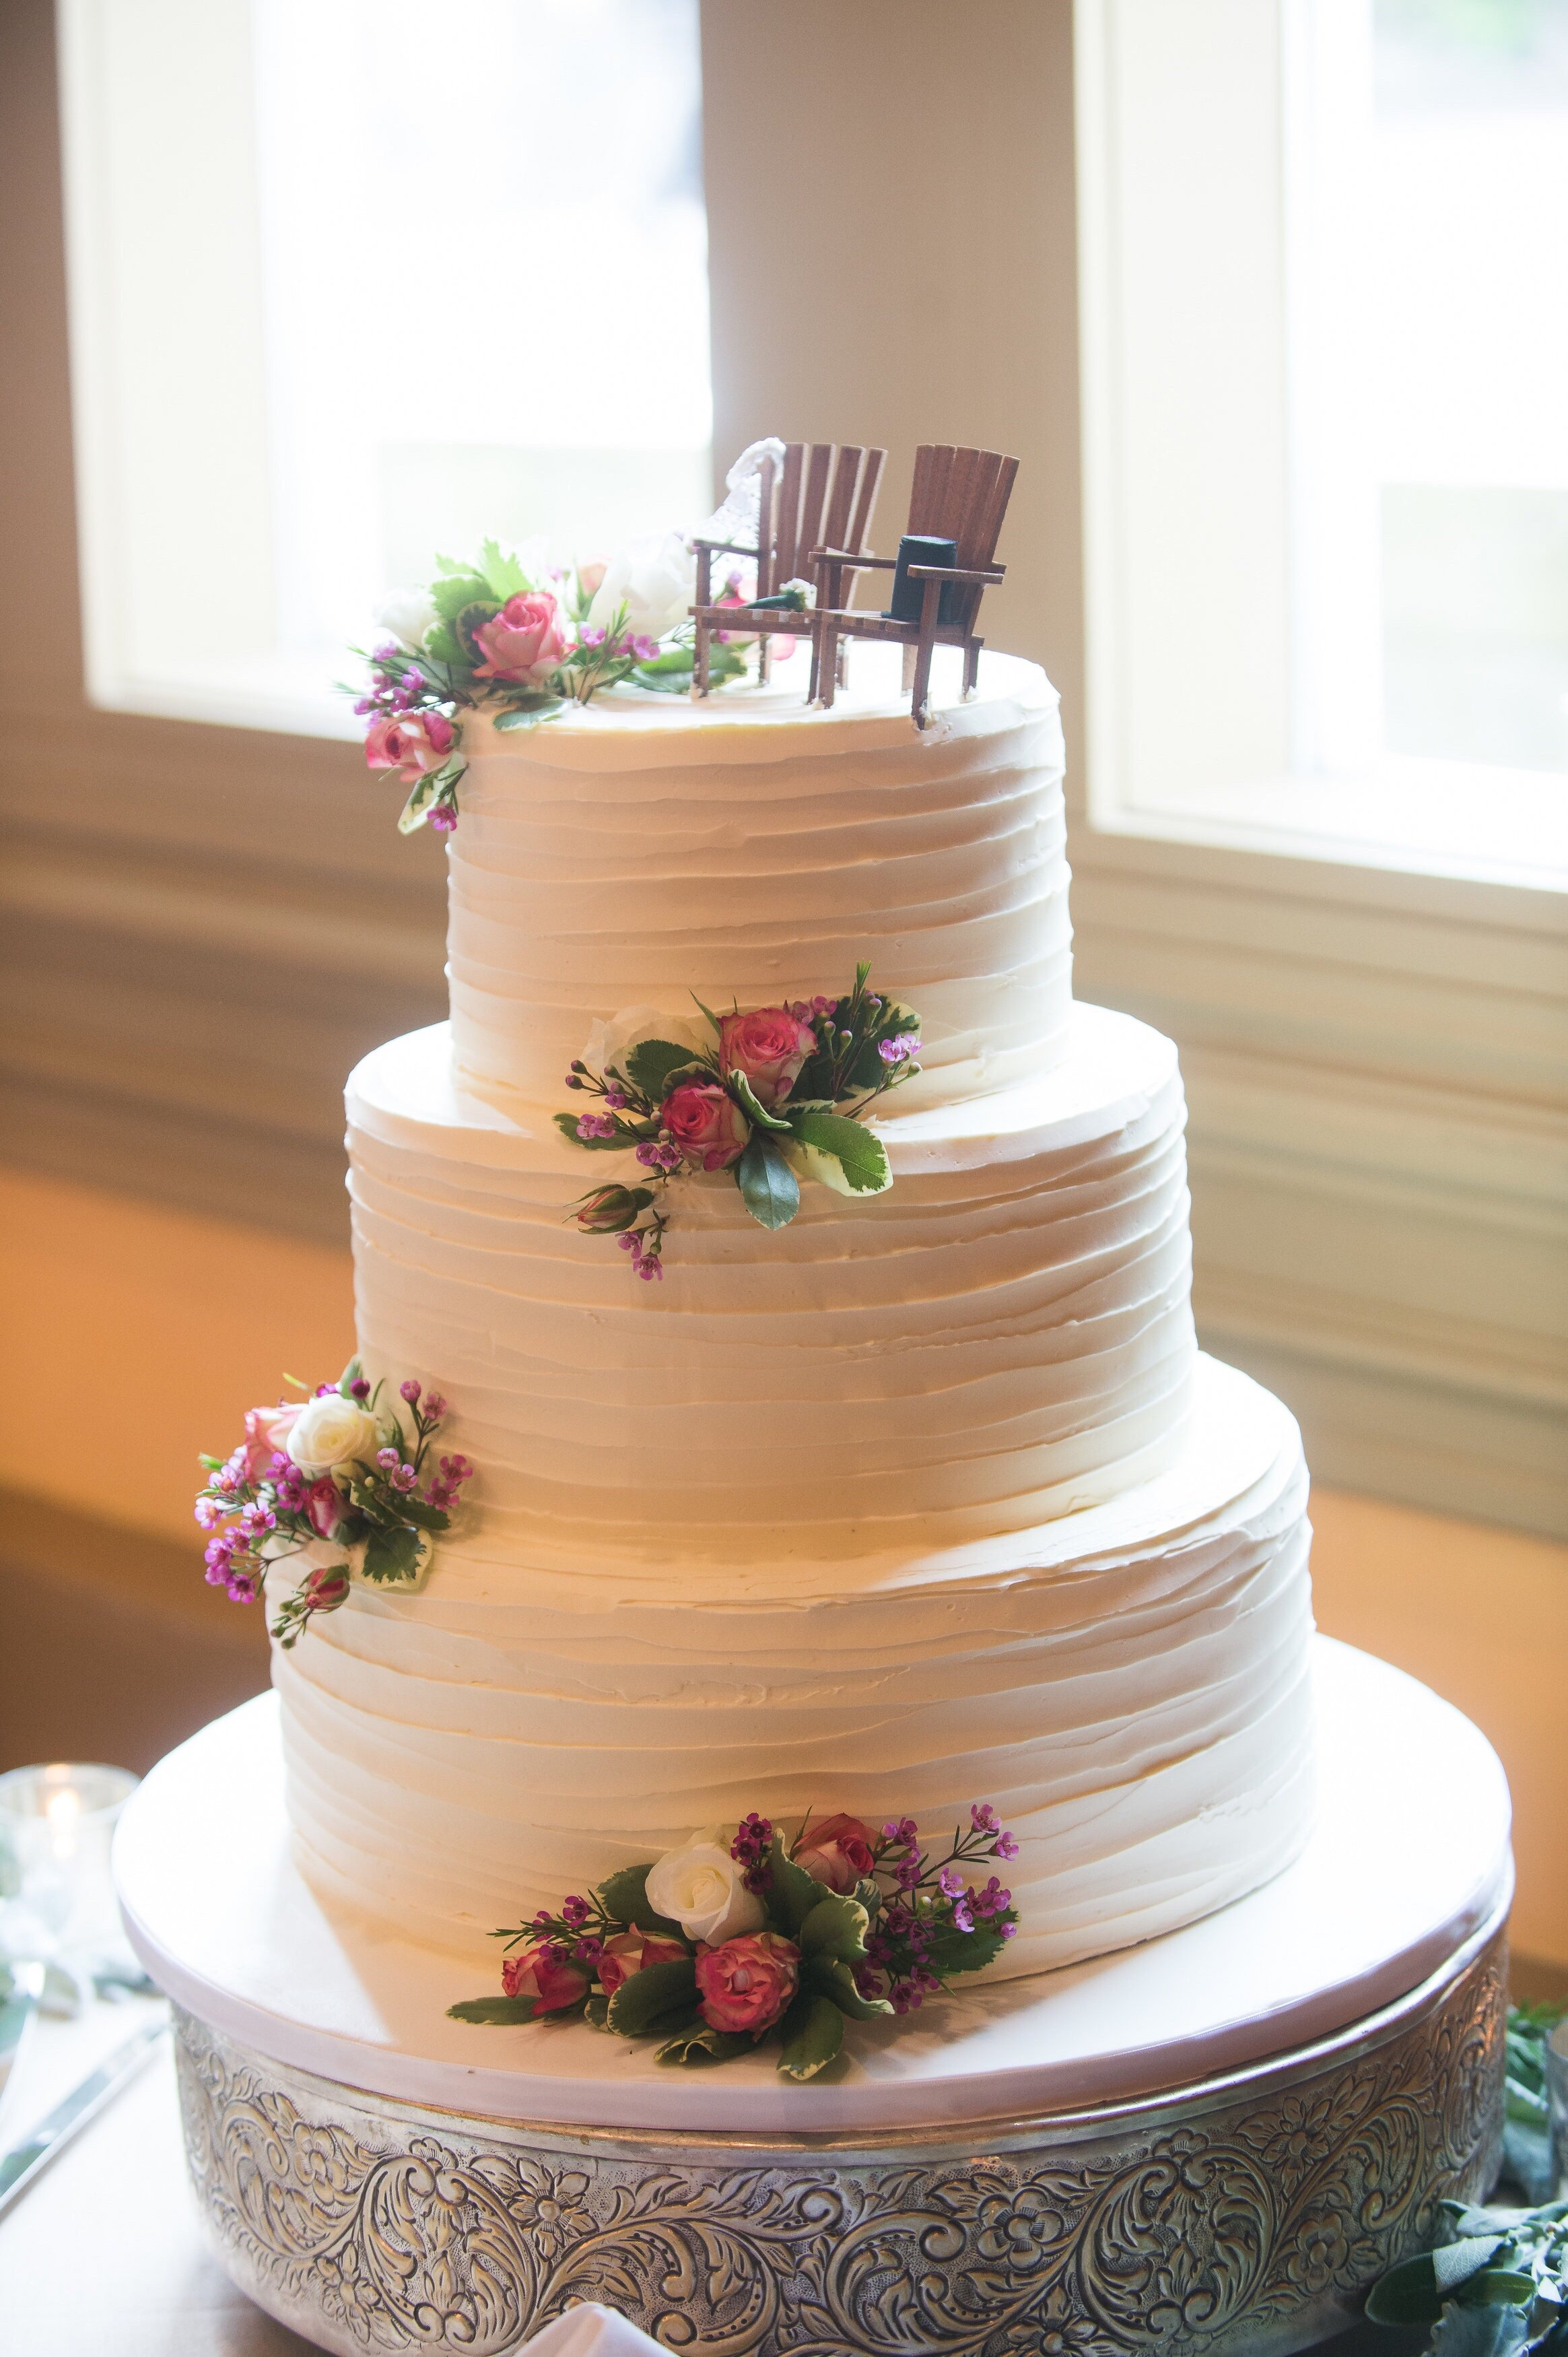 how to make wedding cake designs the 15 common cake designs names so you what to ask for 16016